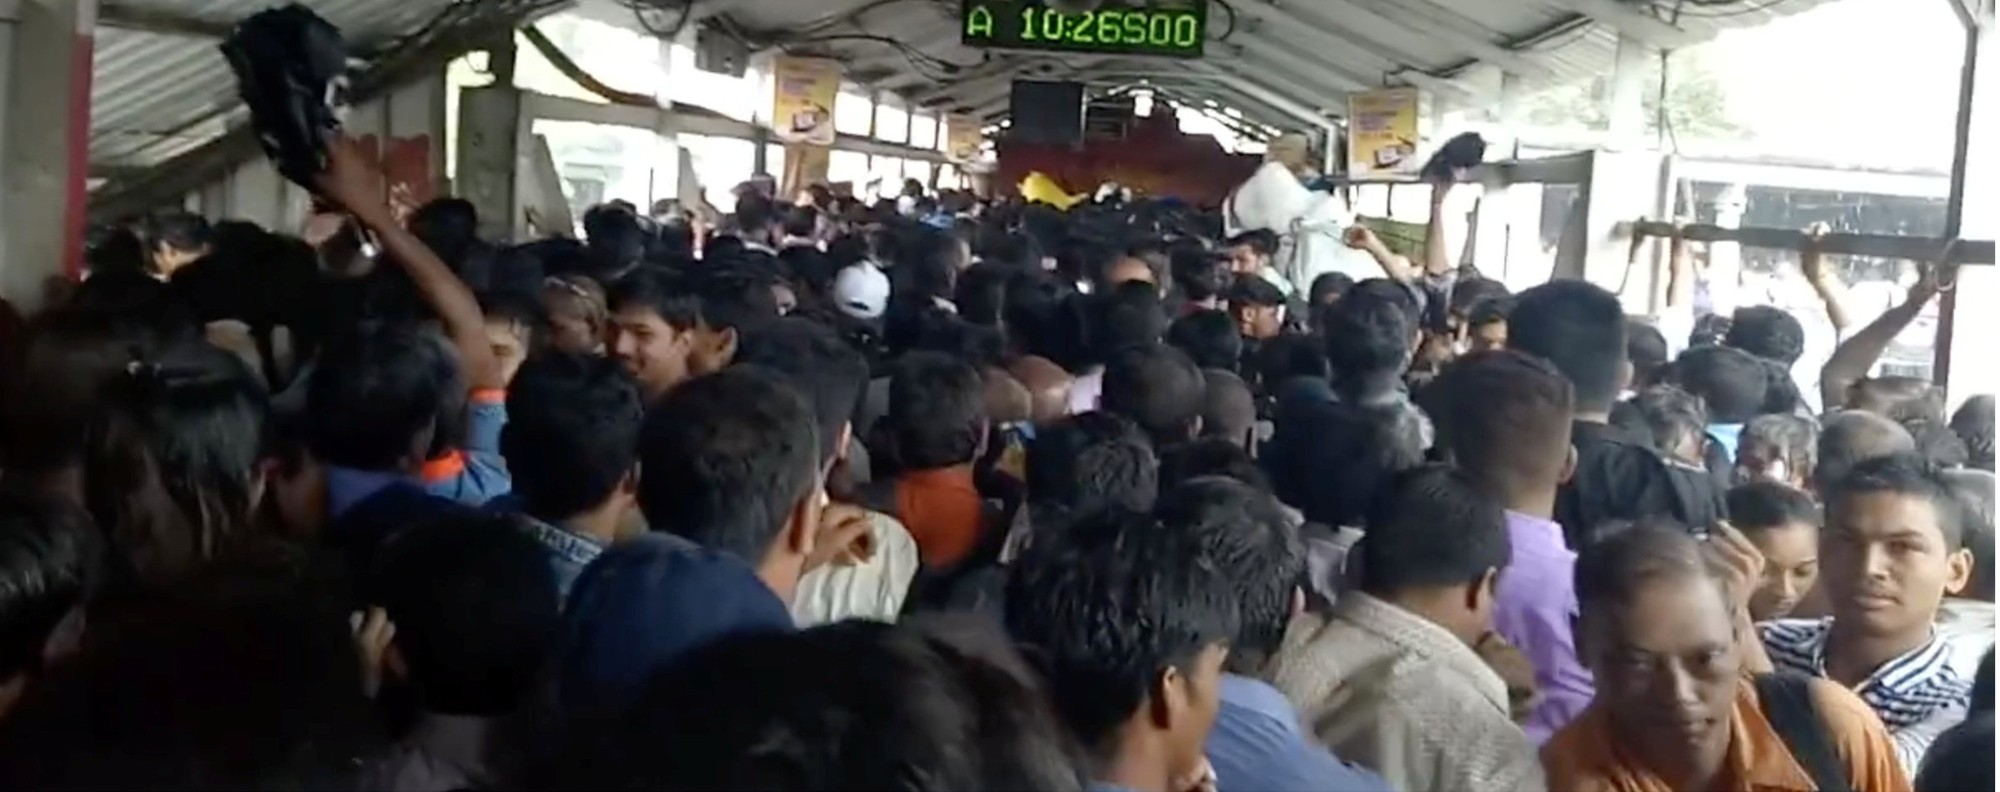 Commuters on the Elphinstone bridge around the time of a stampede. Photo: Reuters